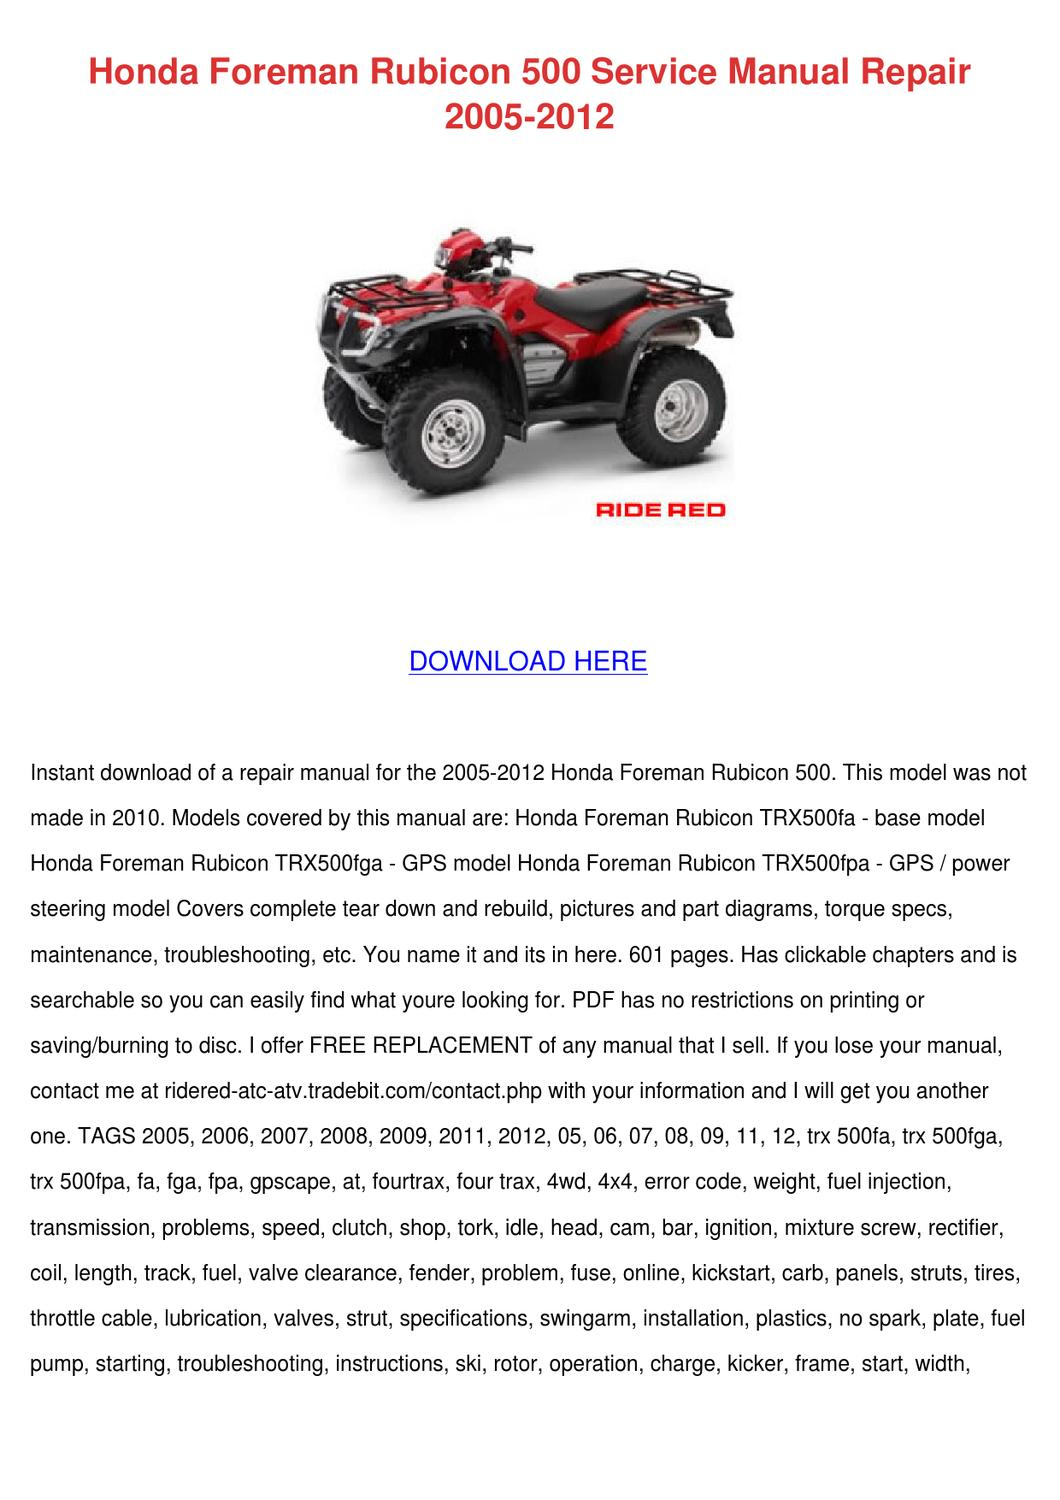 Honda Foreman Rubicon 500 Service Manual Repa by Maxie Chomka - issuu